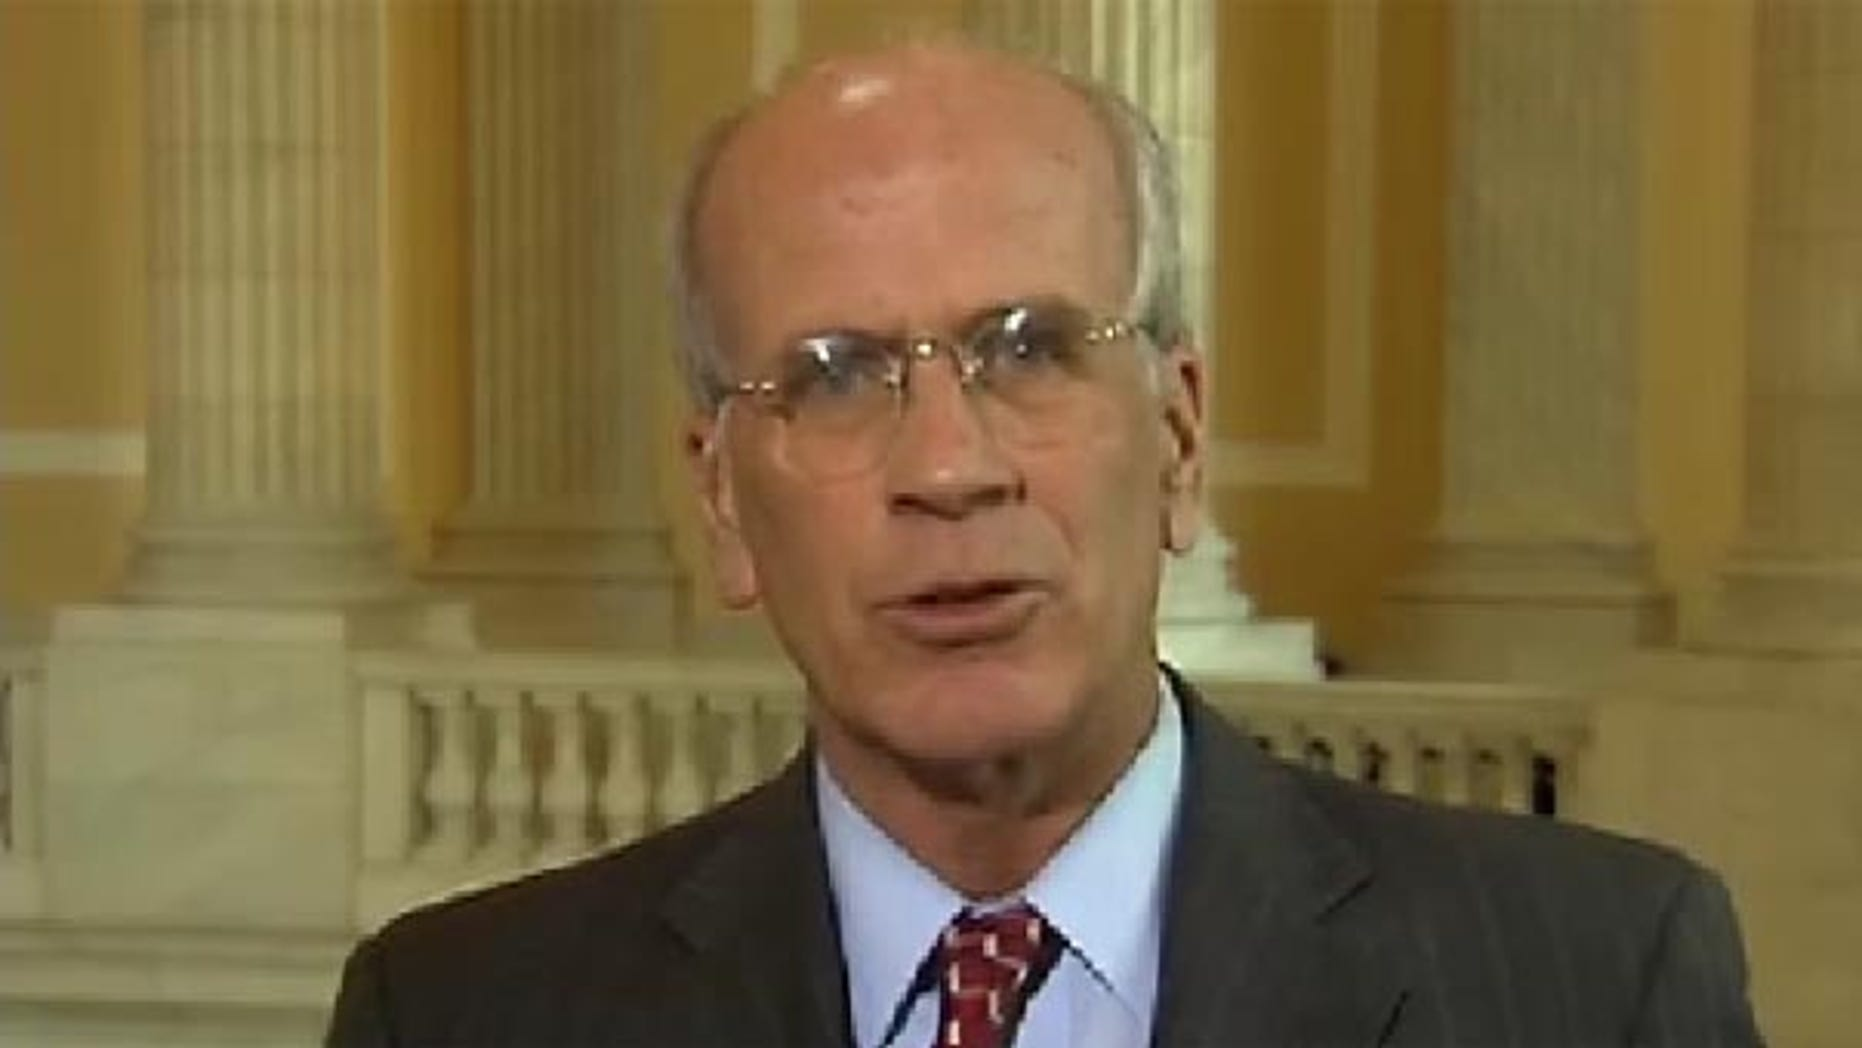 Rep. Peter Welch, D-Vt., opposes the tax deal reached by Republicans and the White House.